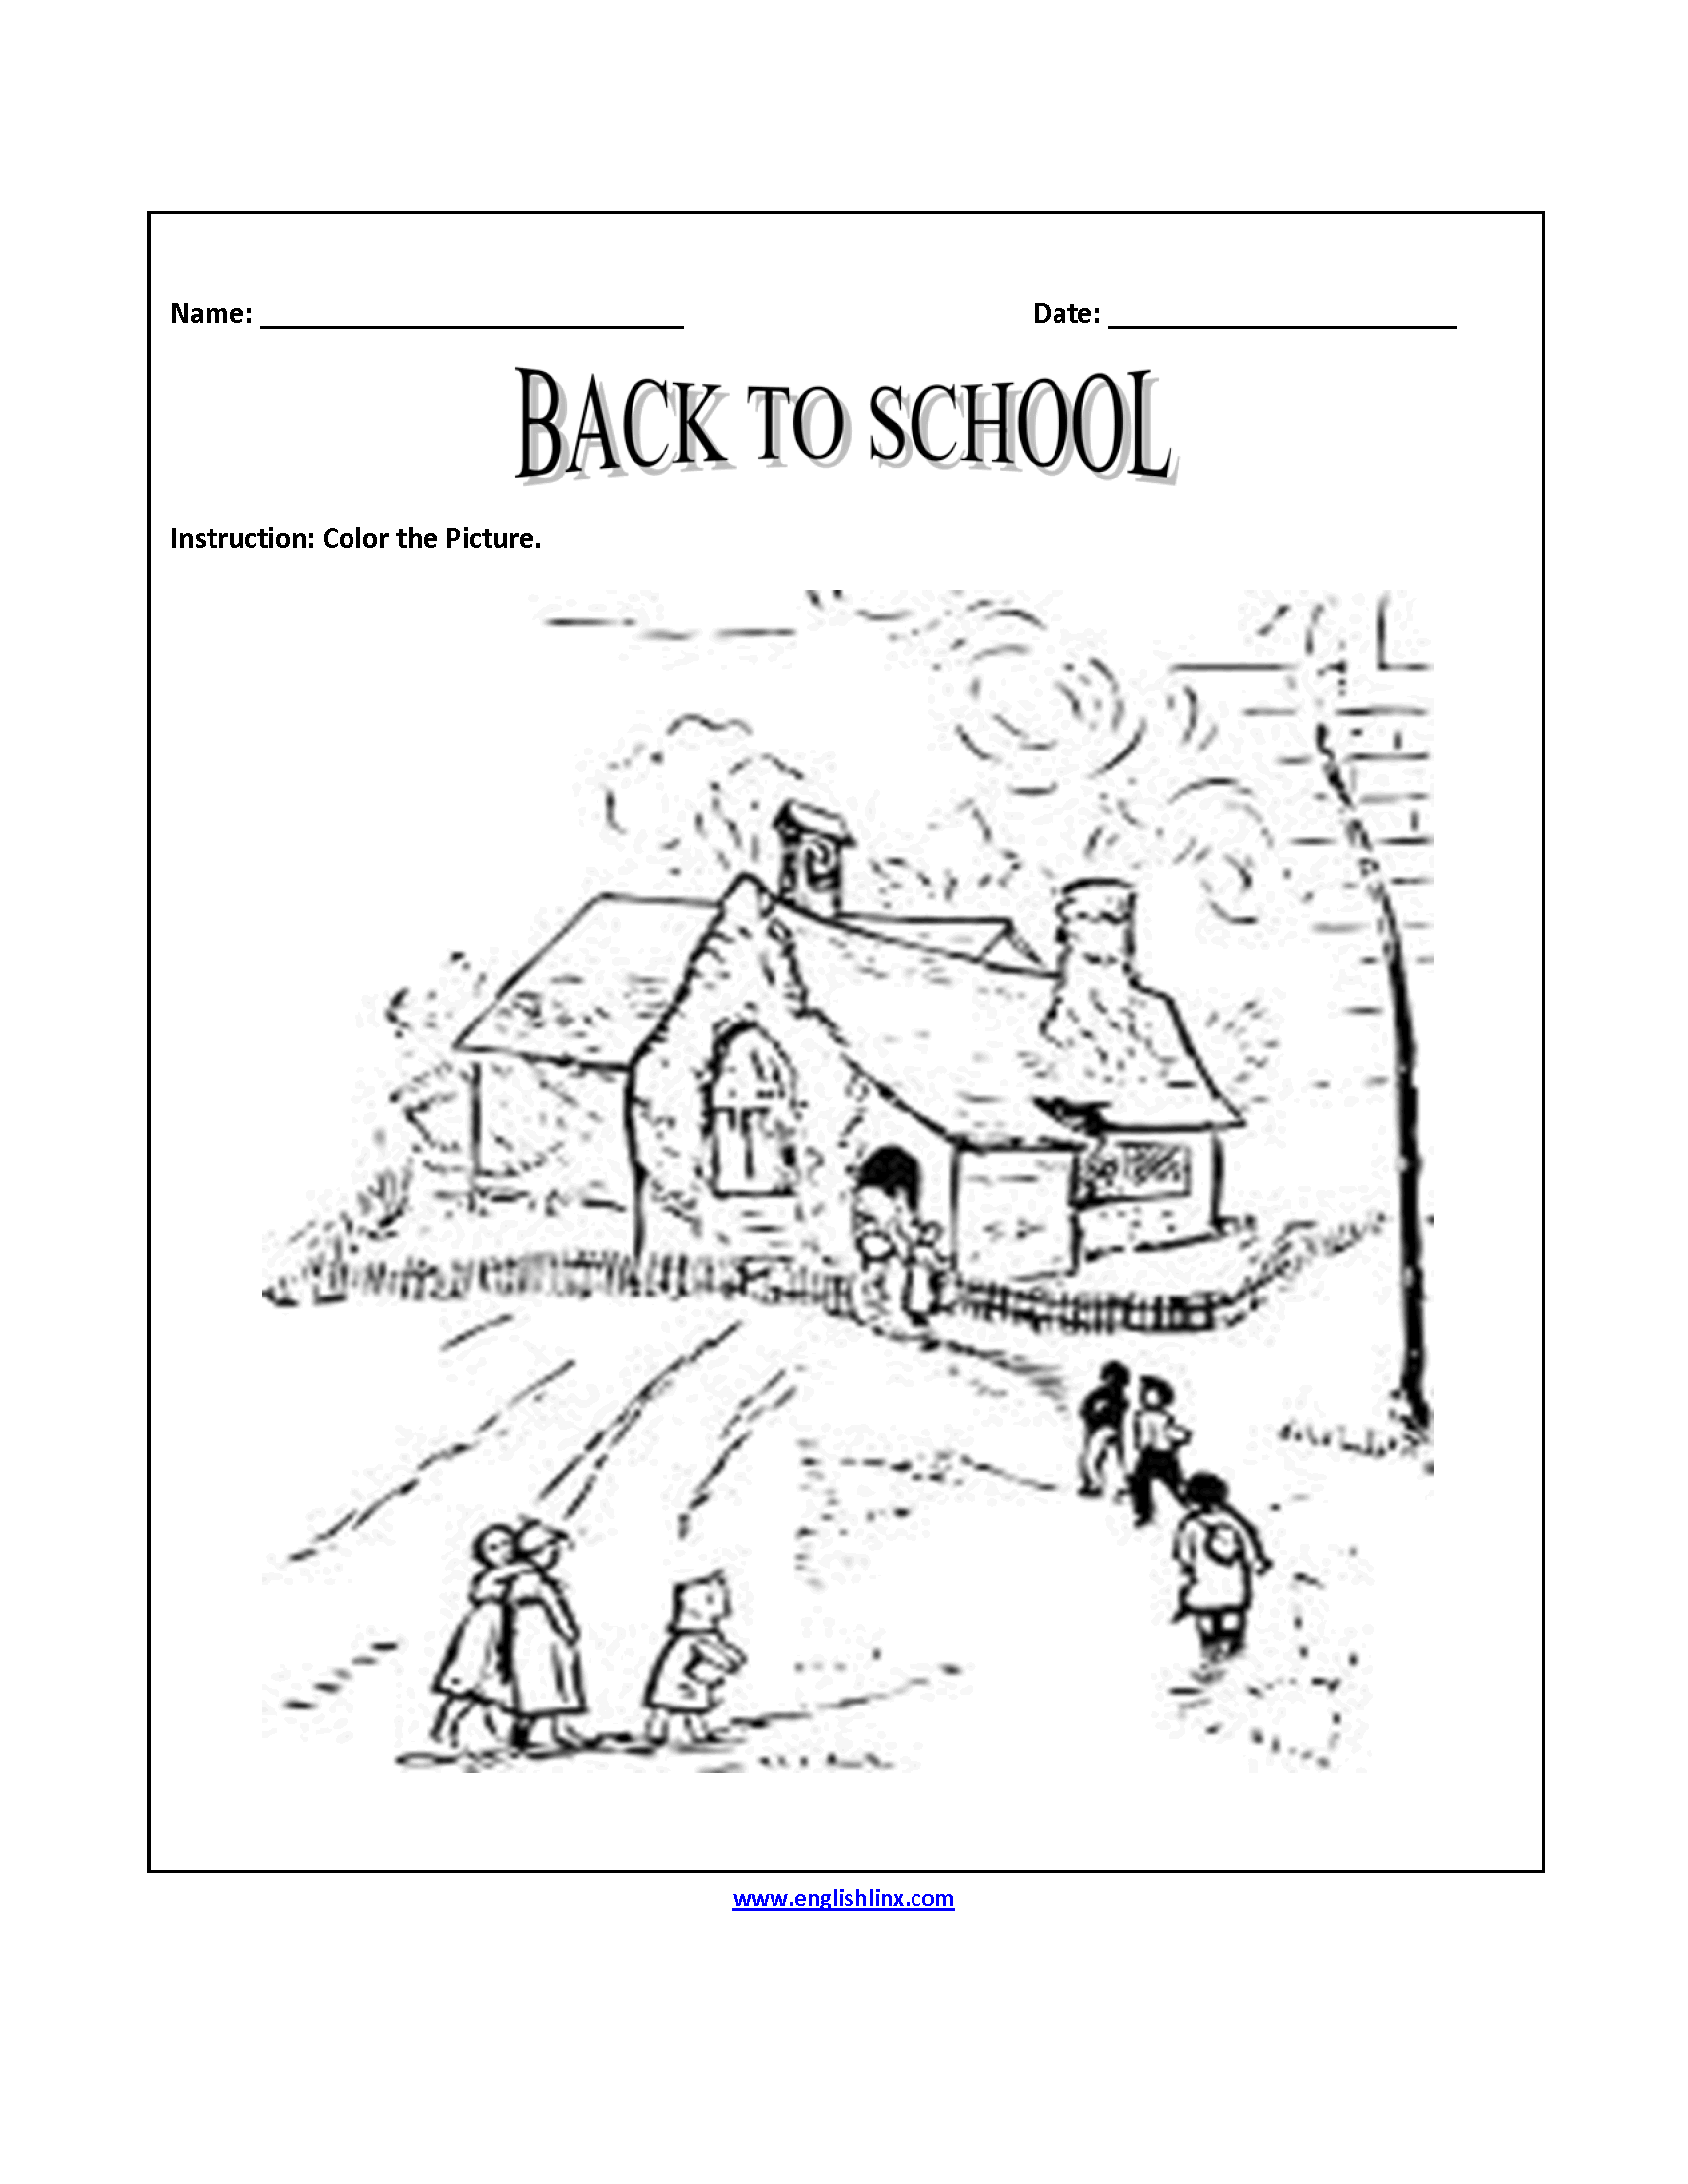 School Worksheets For 3rd Grade : Back to school worksheets coloring page